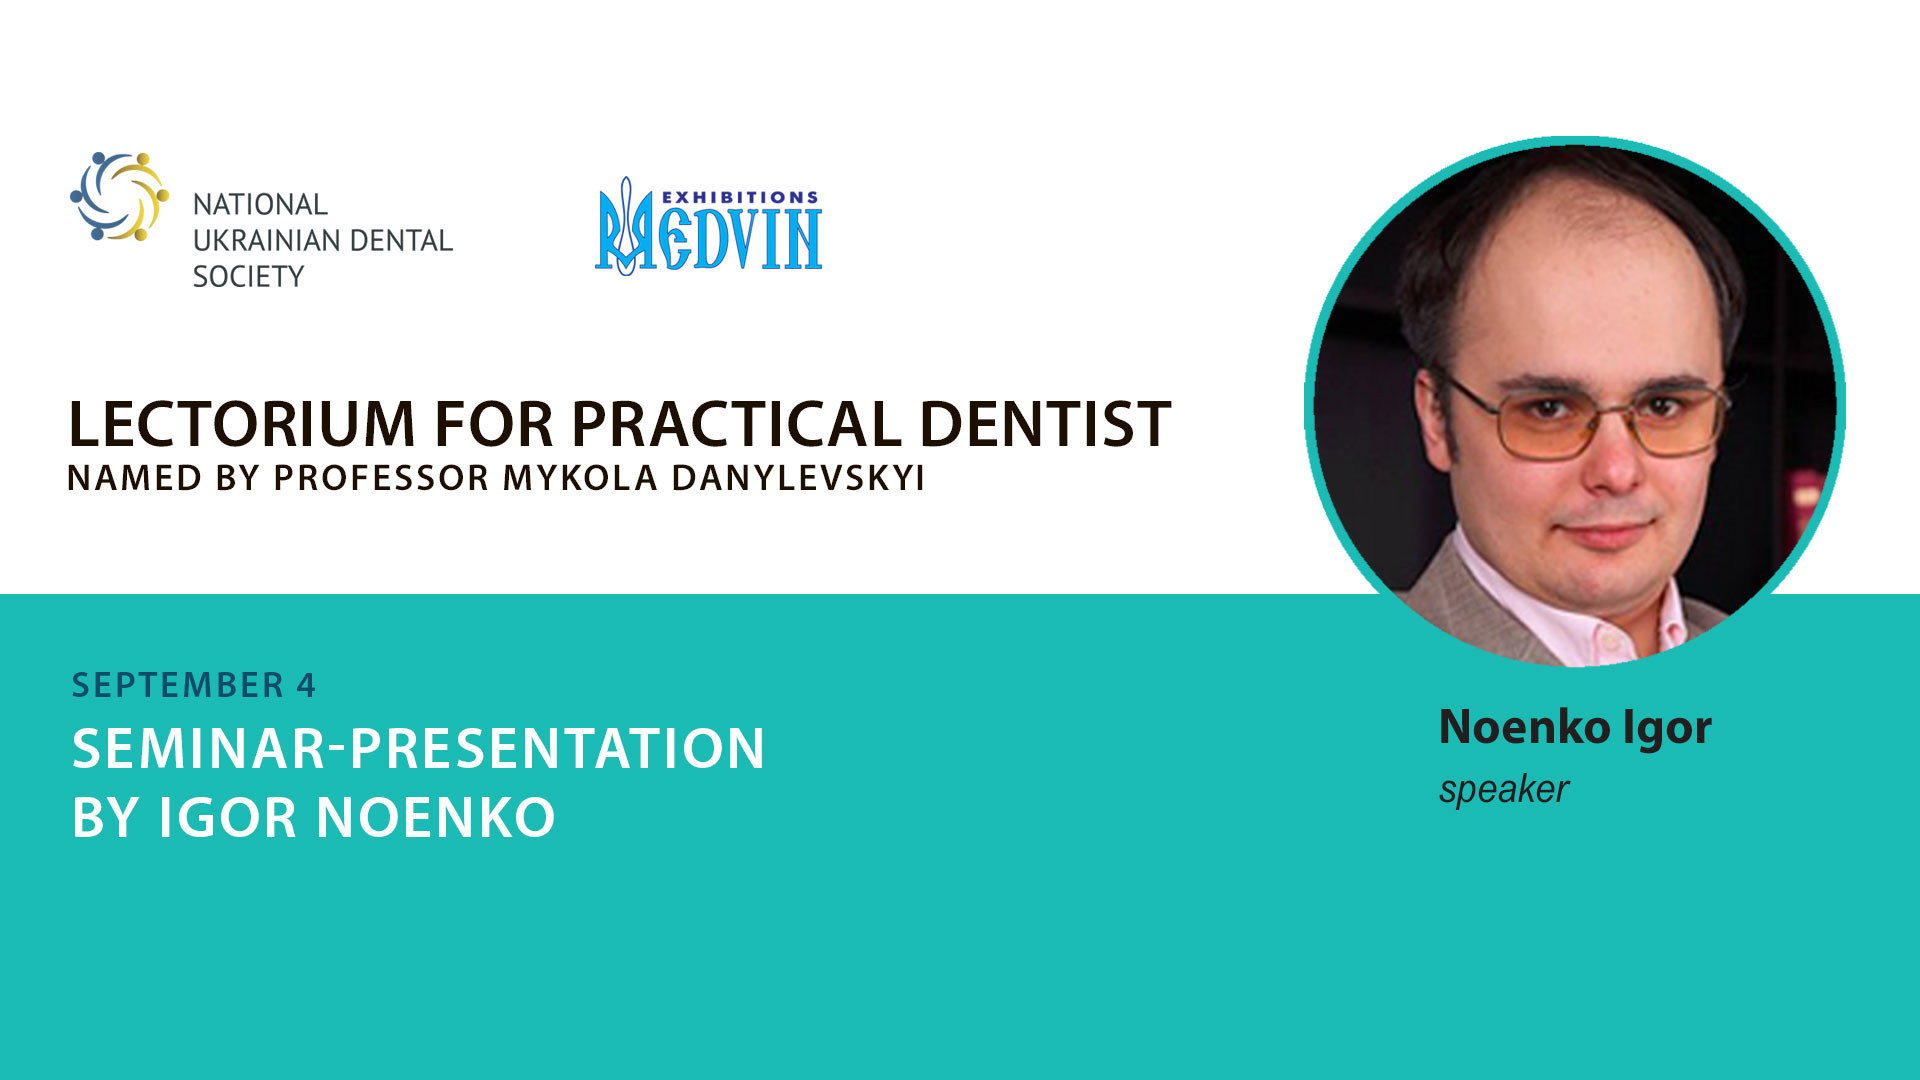 Seminar-presentation from Ihor Noienko